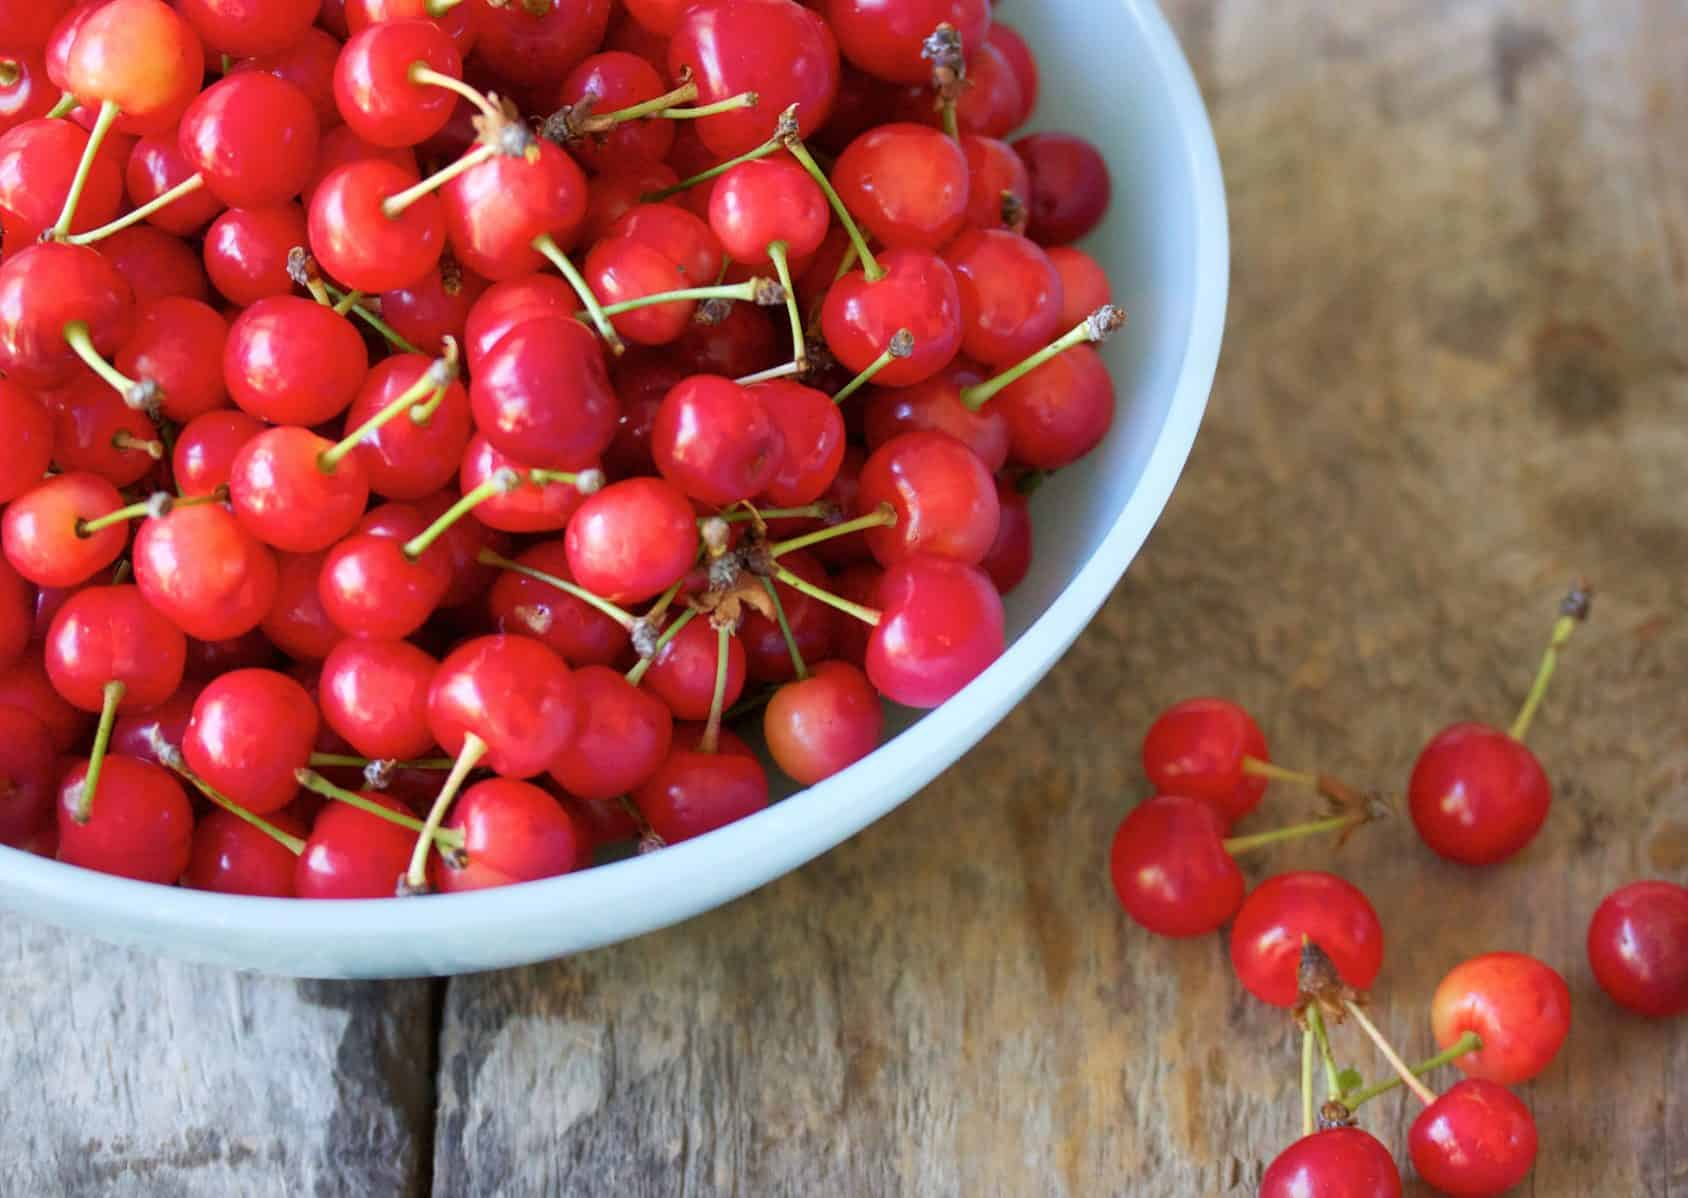 If dogs eat too much cherry, they may have negative side effects.